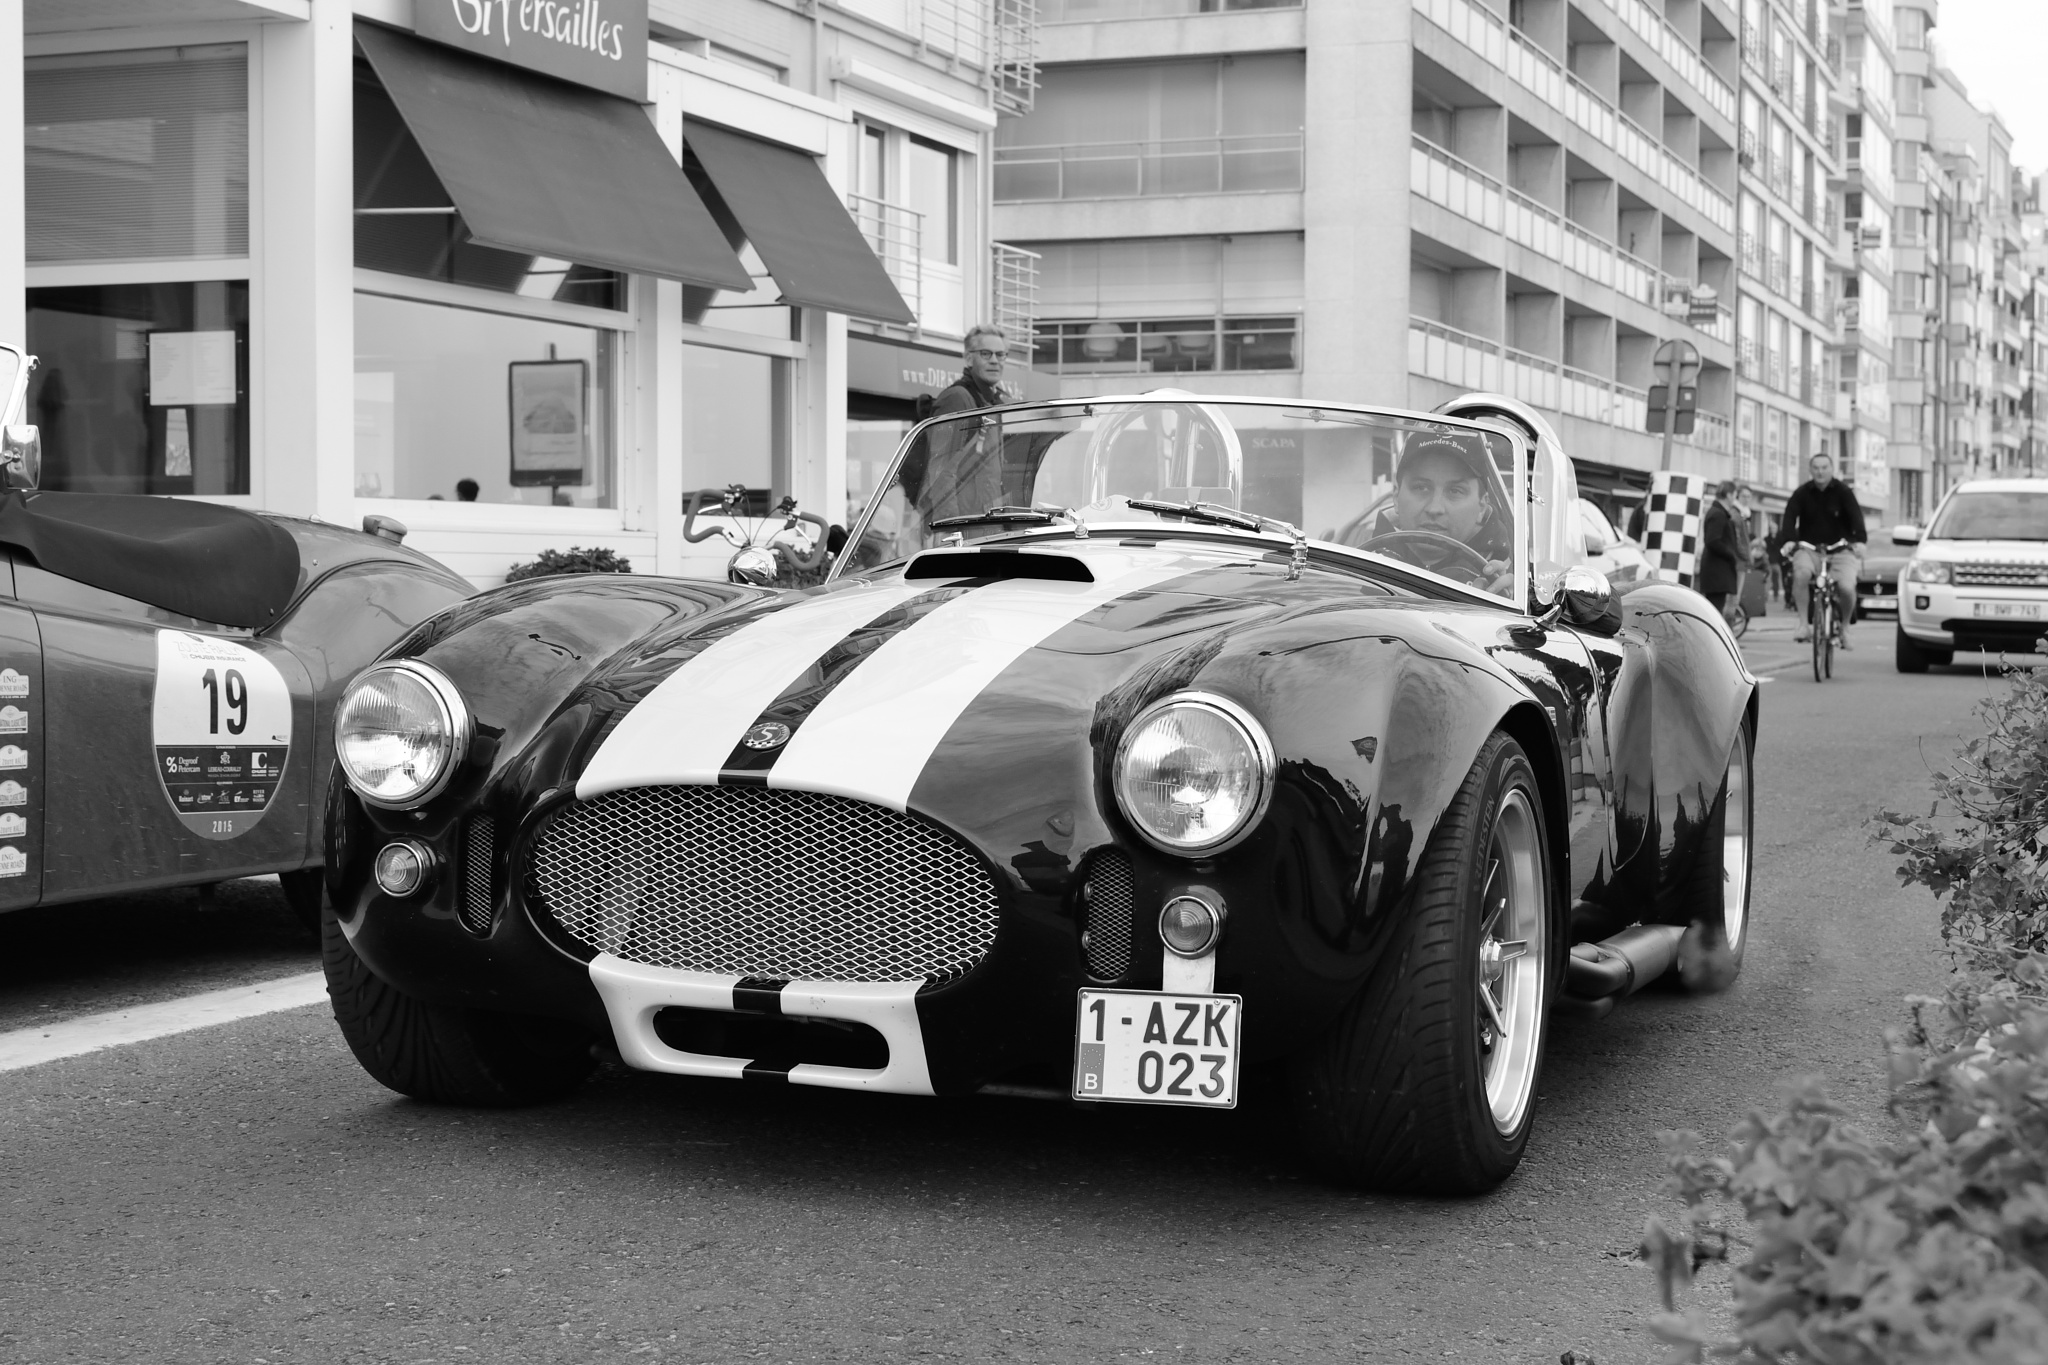 The Zoute GT Tour 2015 at Knokke-heist by Wim Byl